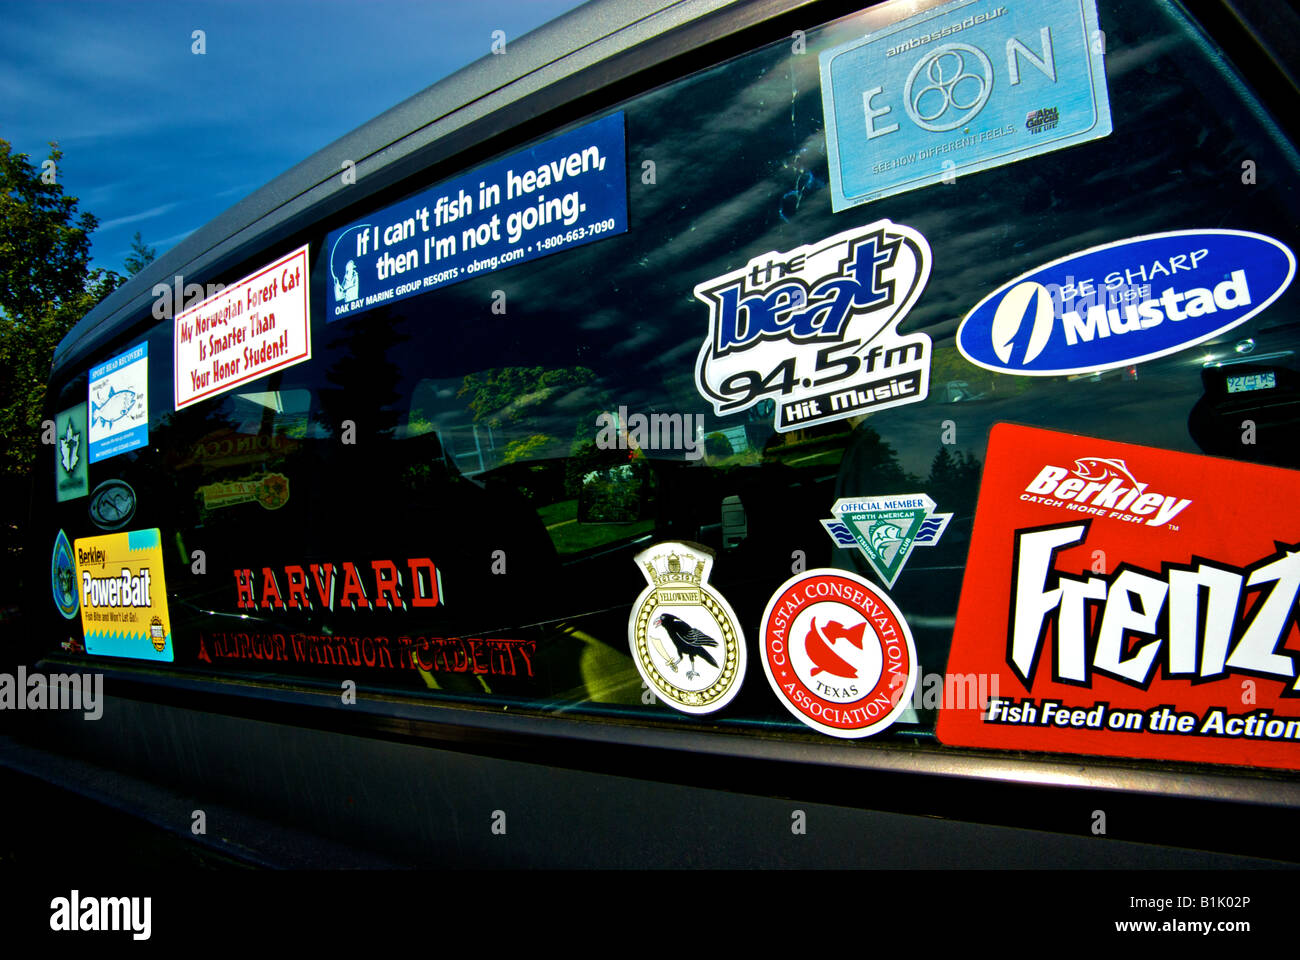 Window stickers on the unwashed cab of an old pickup truck